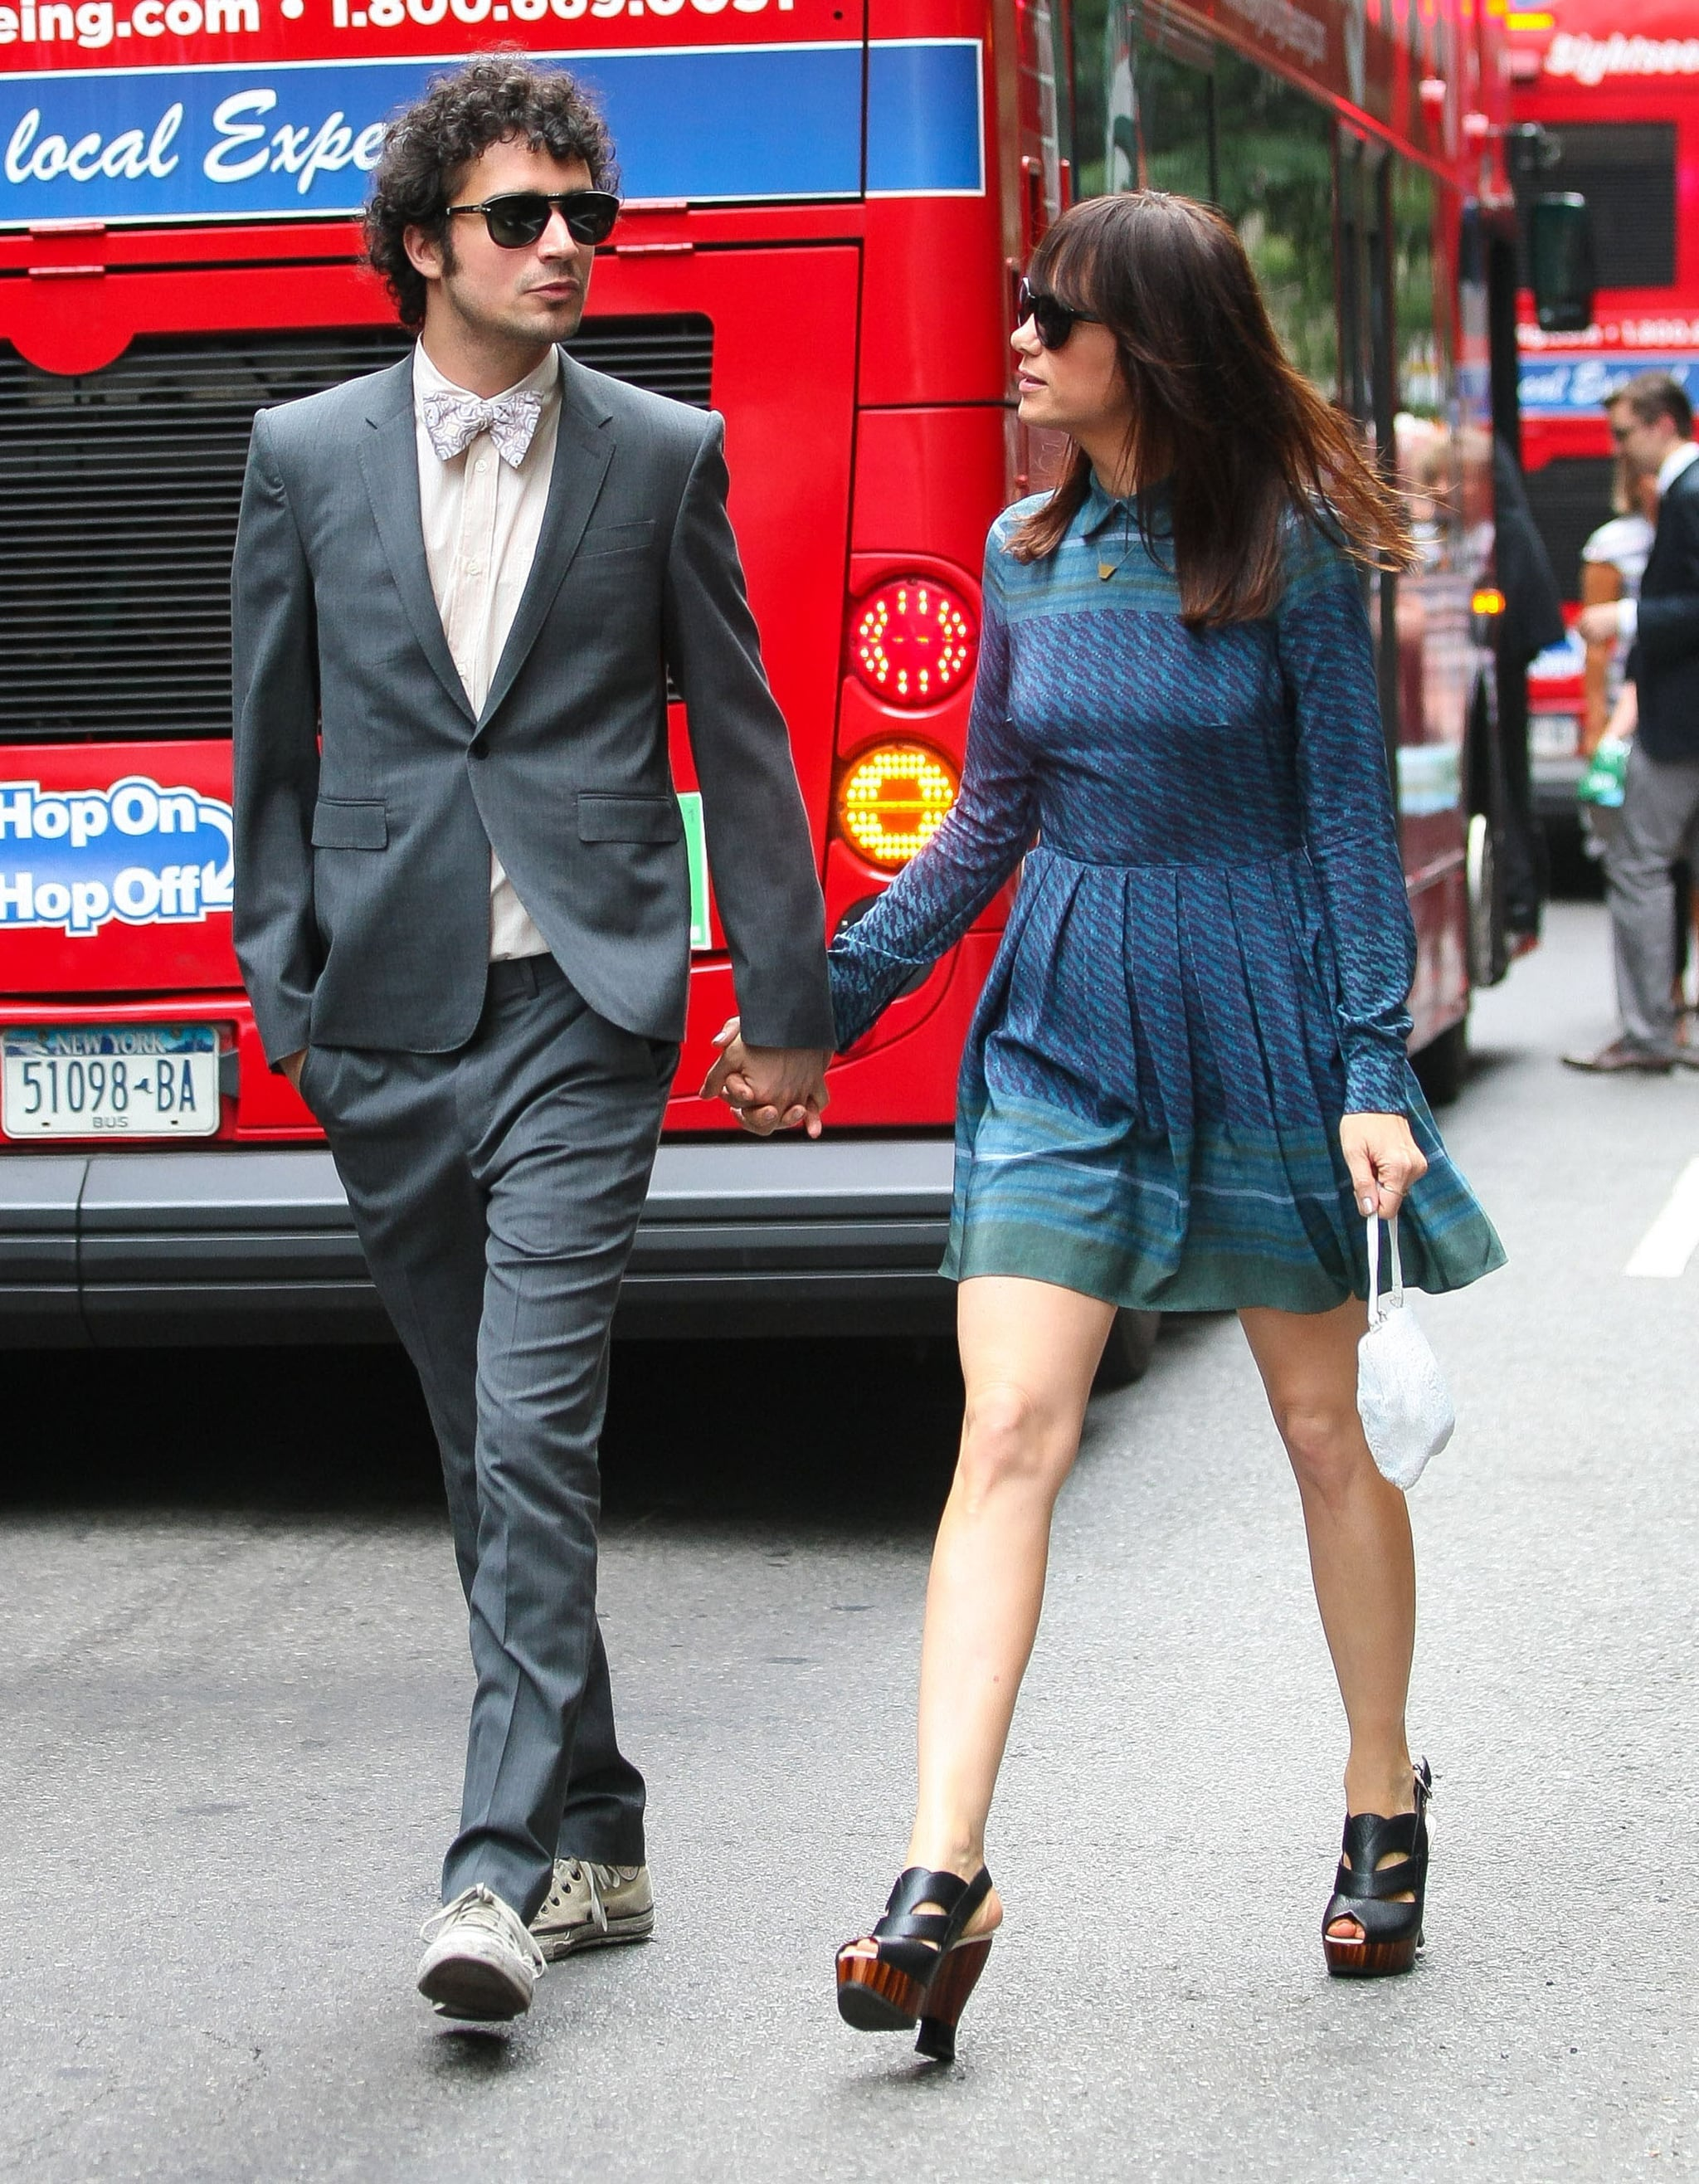 Kristen Wiig and Fabrizio Moretti attended Ellie Kemper and Michael Koman's NYC wedding in July 2012.